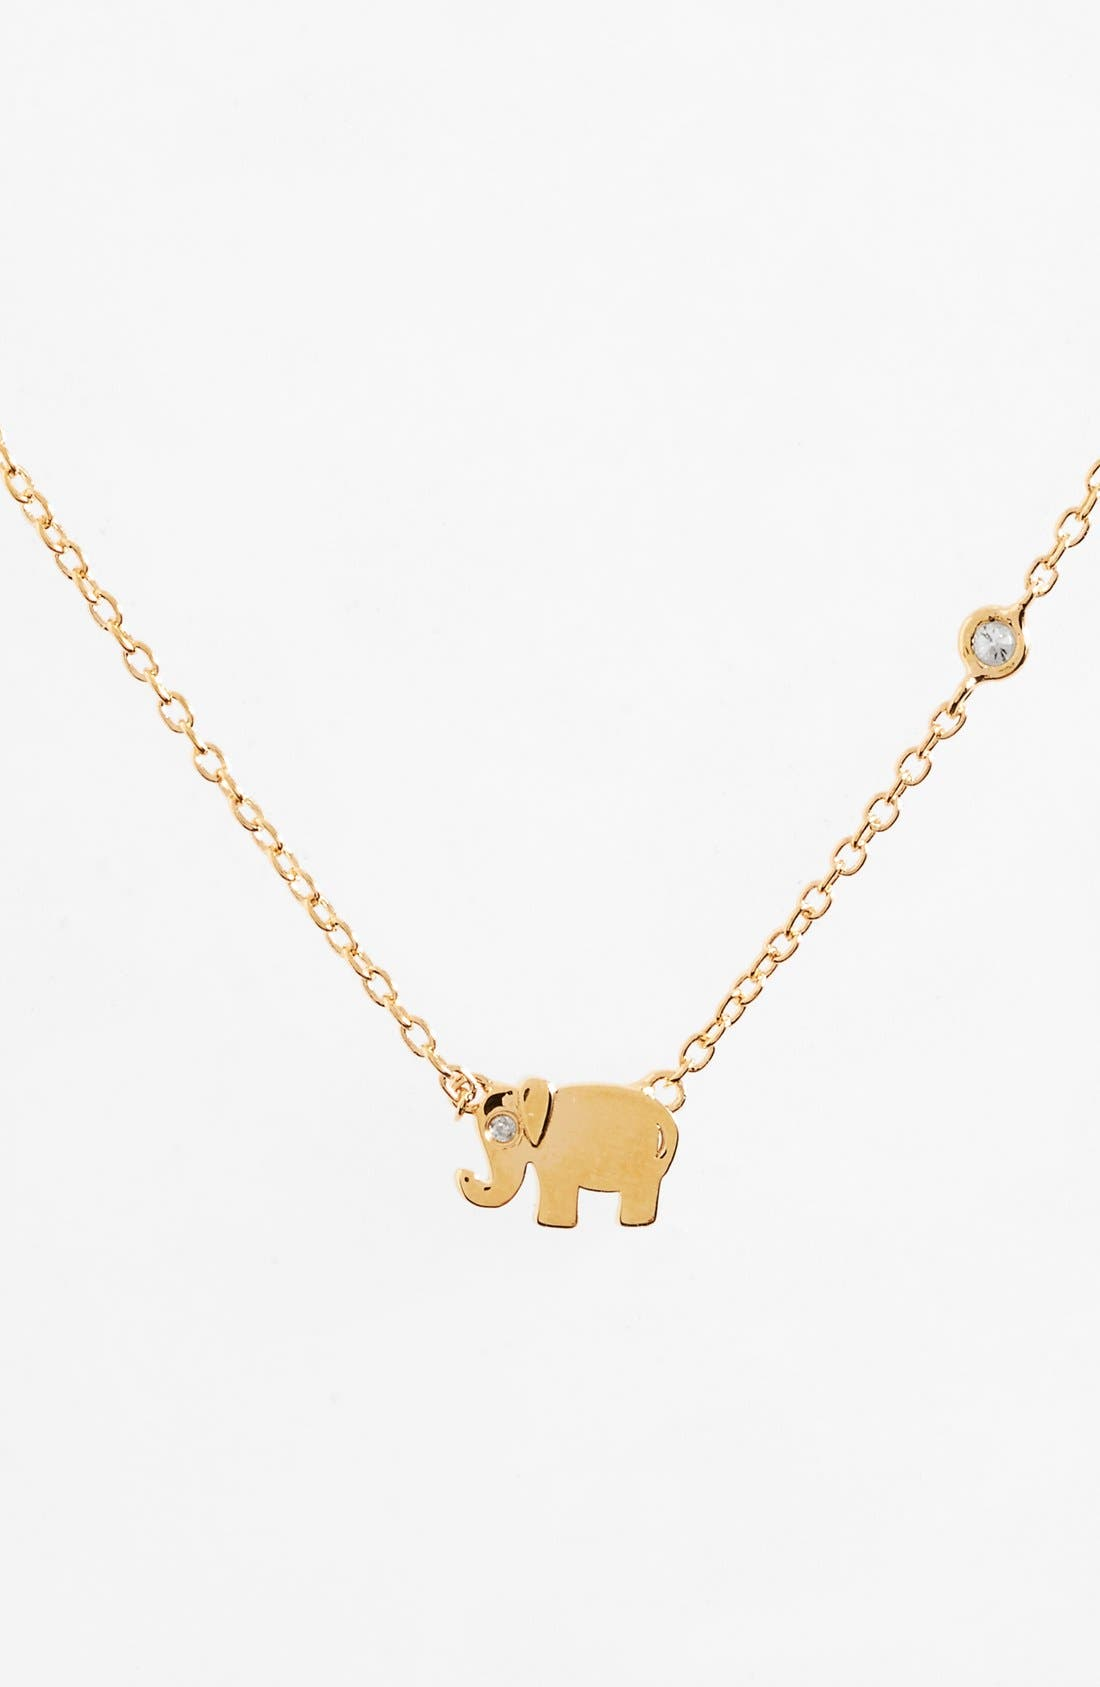 SHY by Sydney Evan Elephant Necklace,                         Main,                         color, Gold